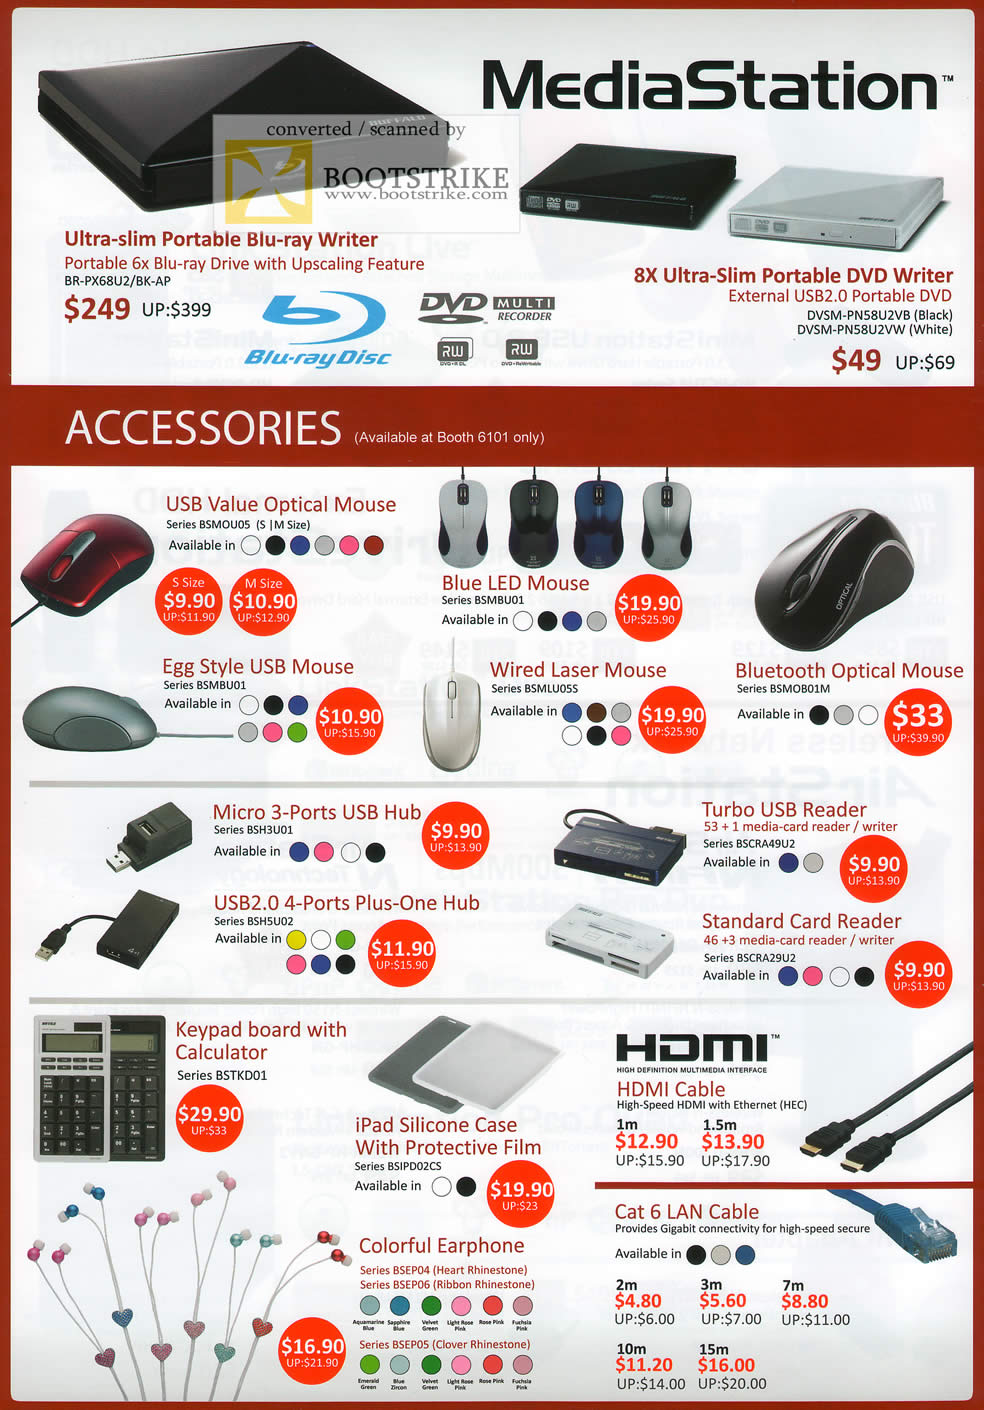 IT Show 2011 price list image brochure of Buffalo MediaStation Blu Ray Writer BR-PX68UW BK-AP DVSM Accessories Mouse Optical LED Laser HDMI Cable Cat 6 LAN Earphone Case